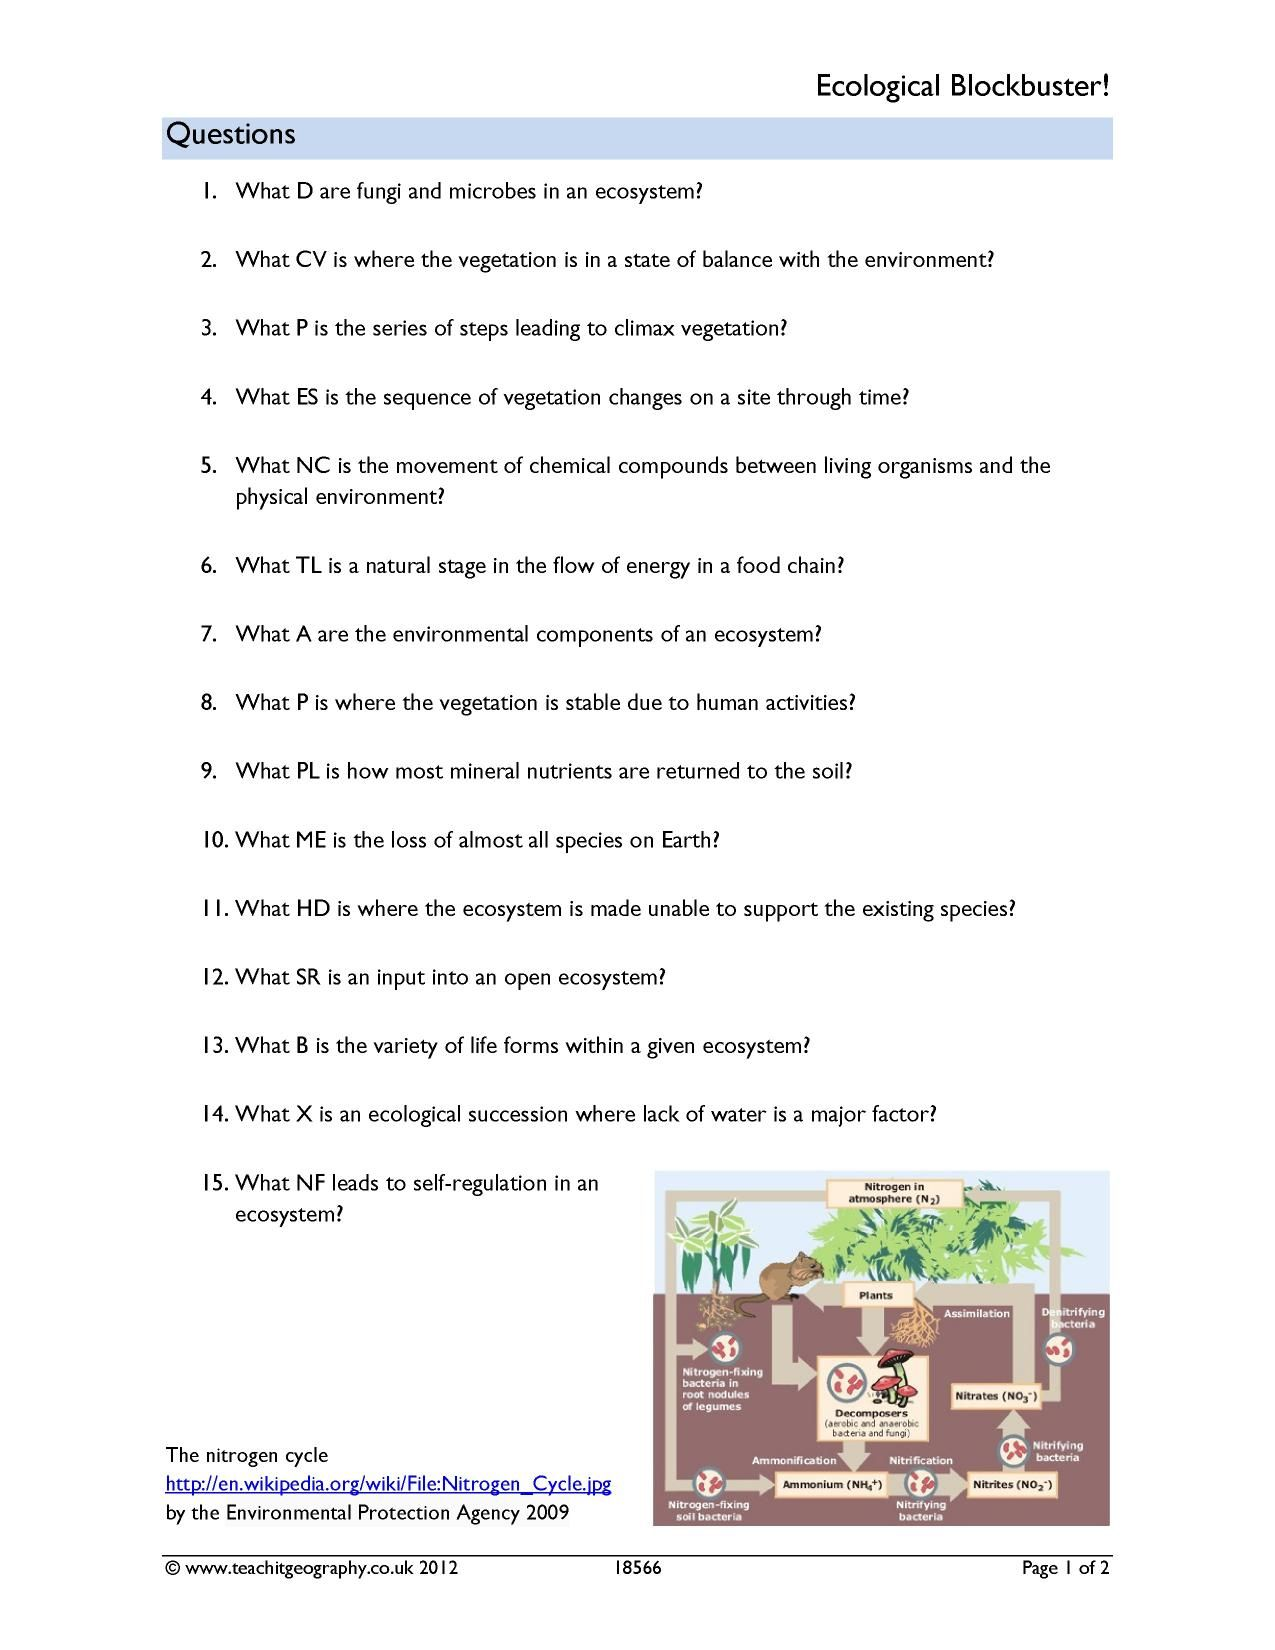 Ecological Succession Worksheet Answer Key